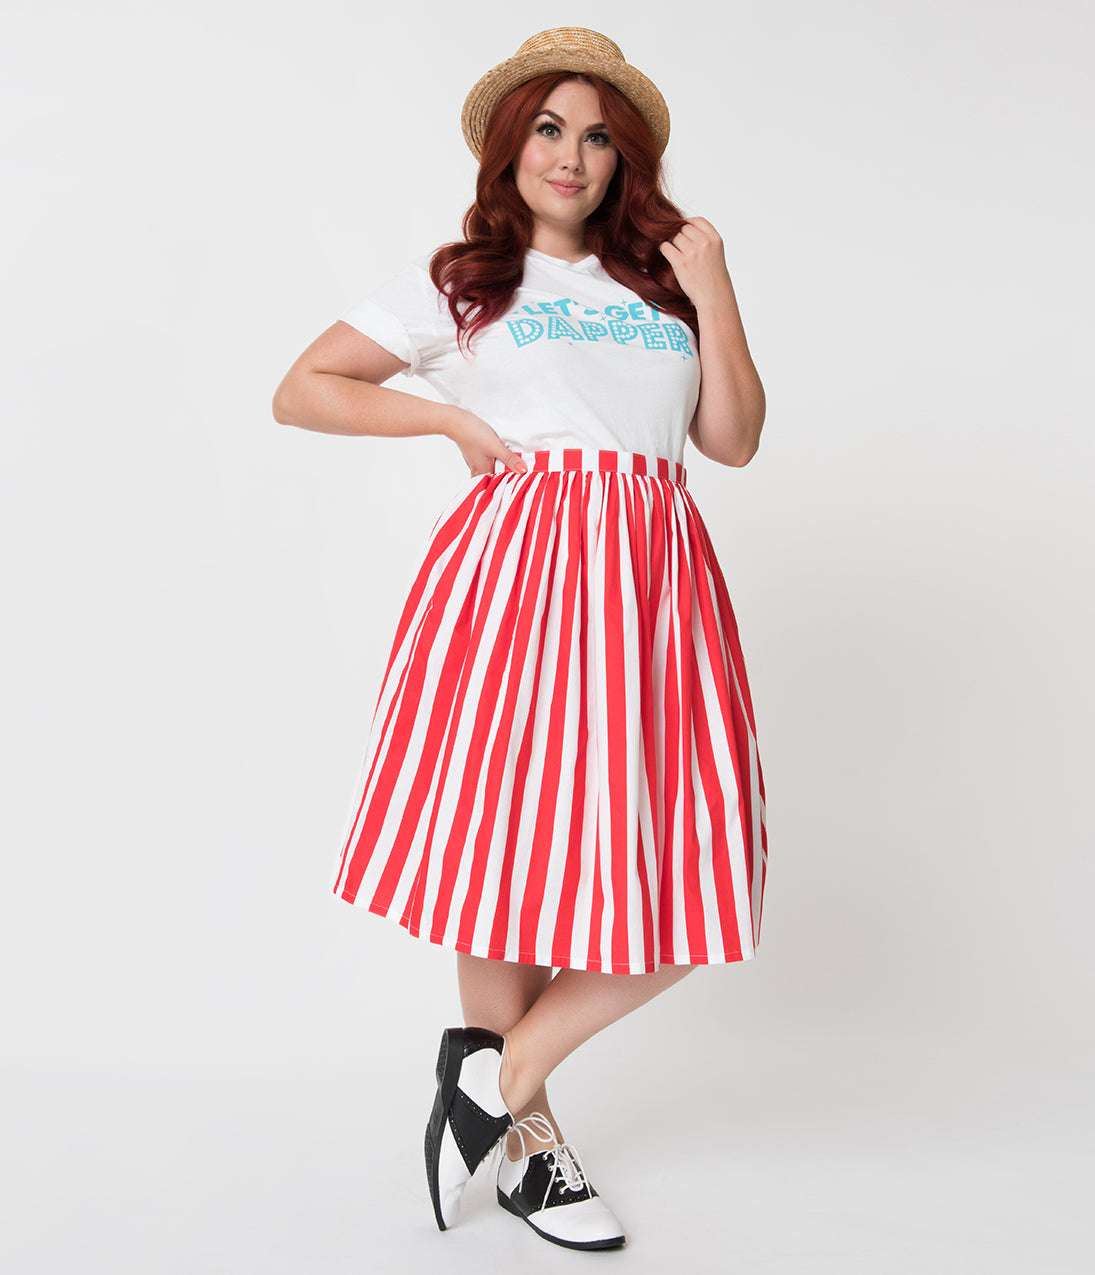 1950s Plus Size Dresses, Clothing | Plus Size Swing Dresses Plus Size Red  White Striped Gathered Cotton Swing Skirt $42.00 AT vintagedancer.com